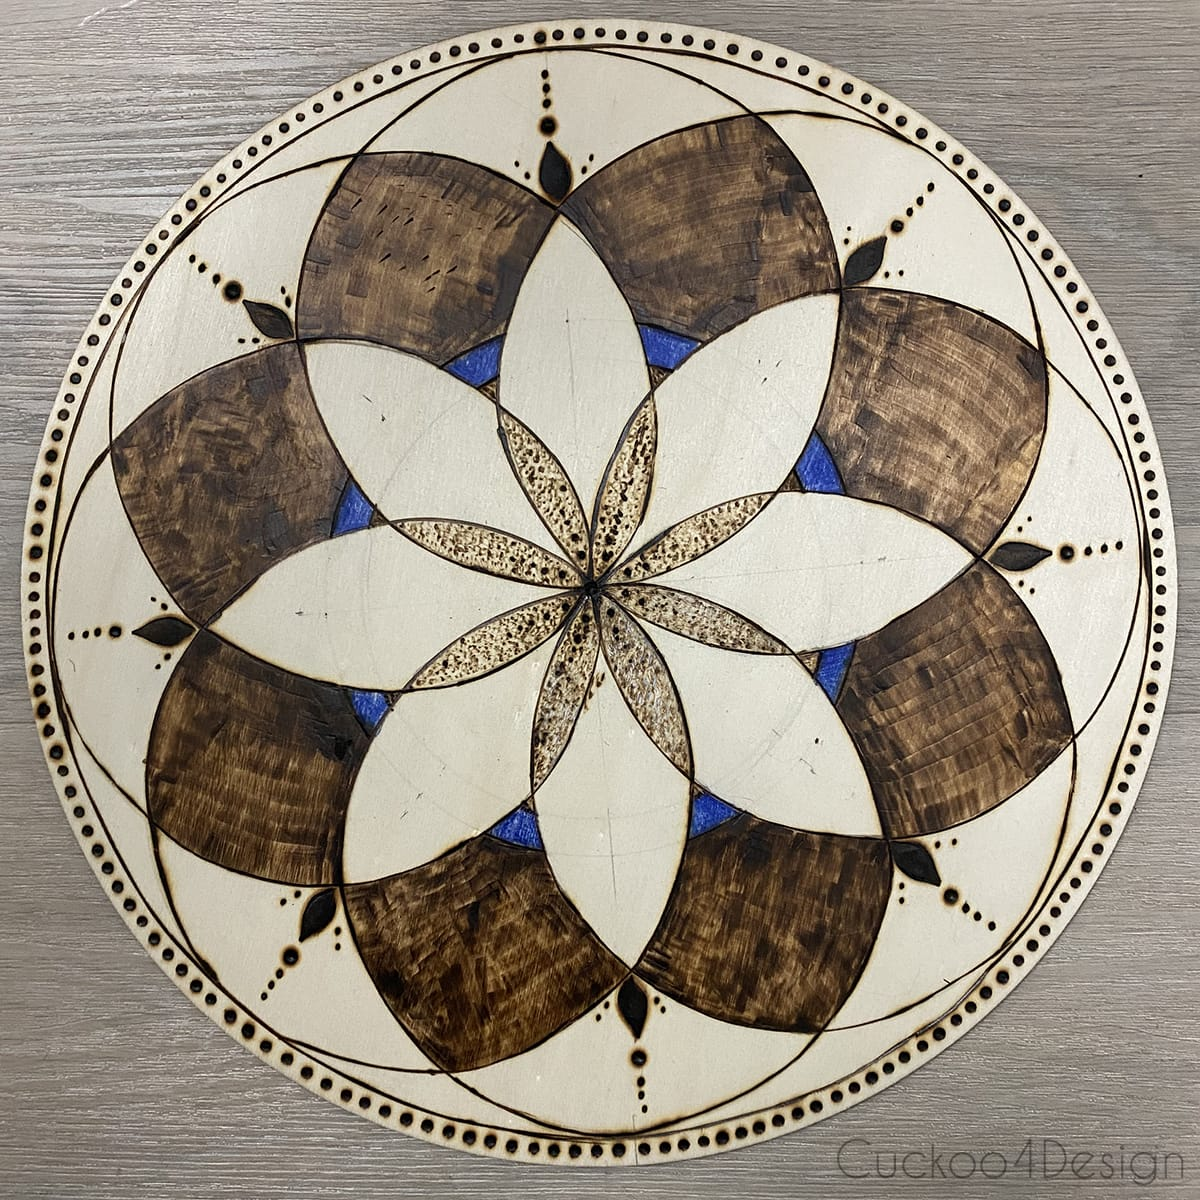 finished mandala pattern with a circular structure from instructional video